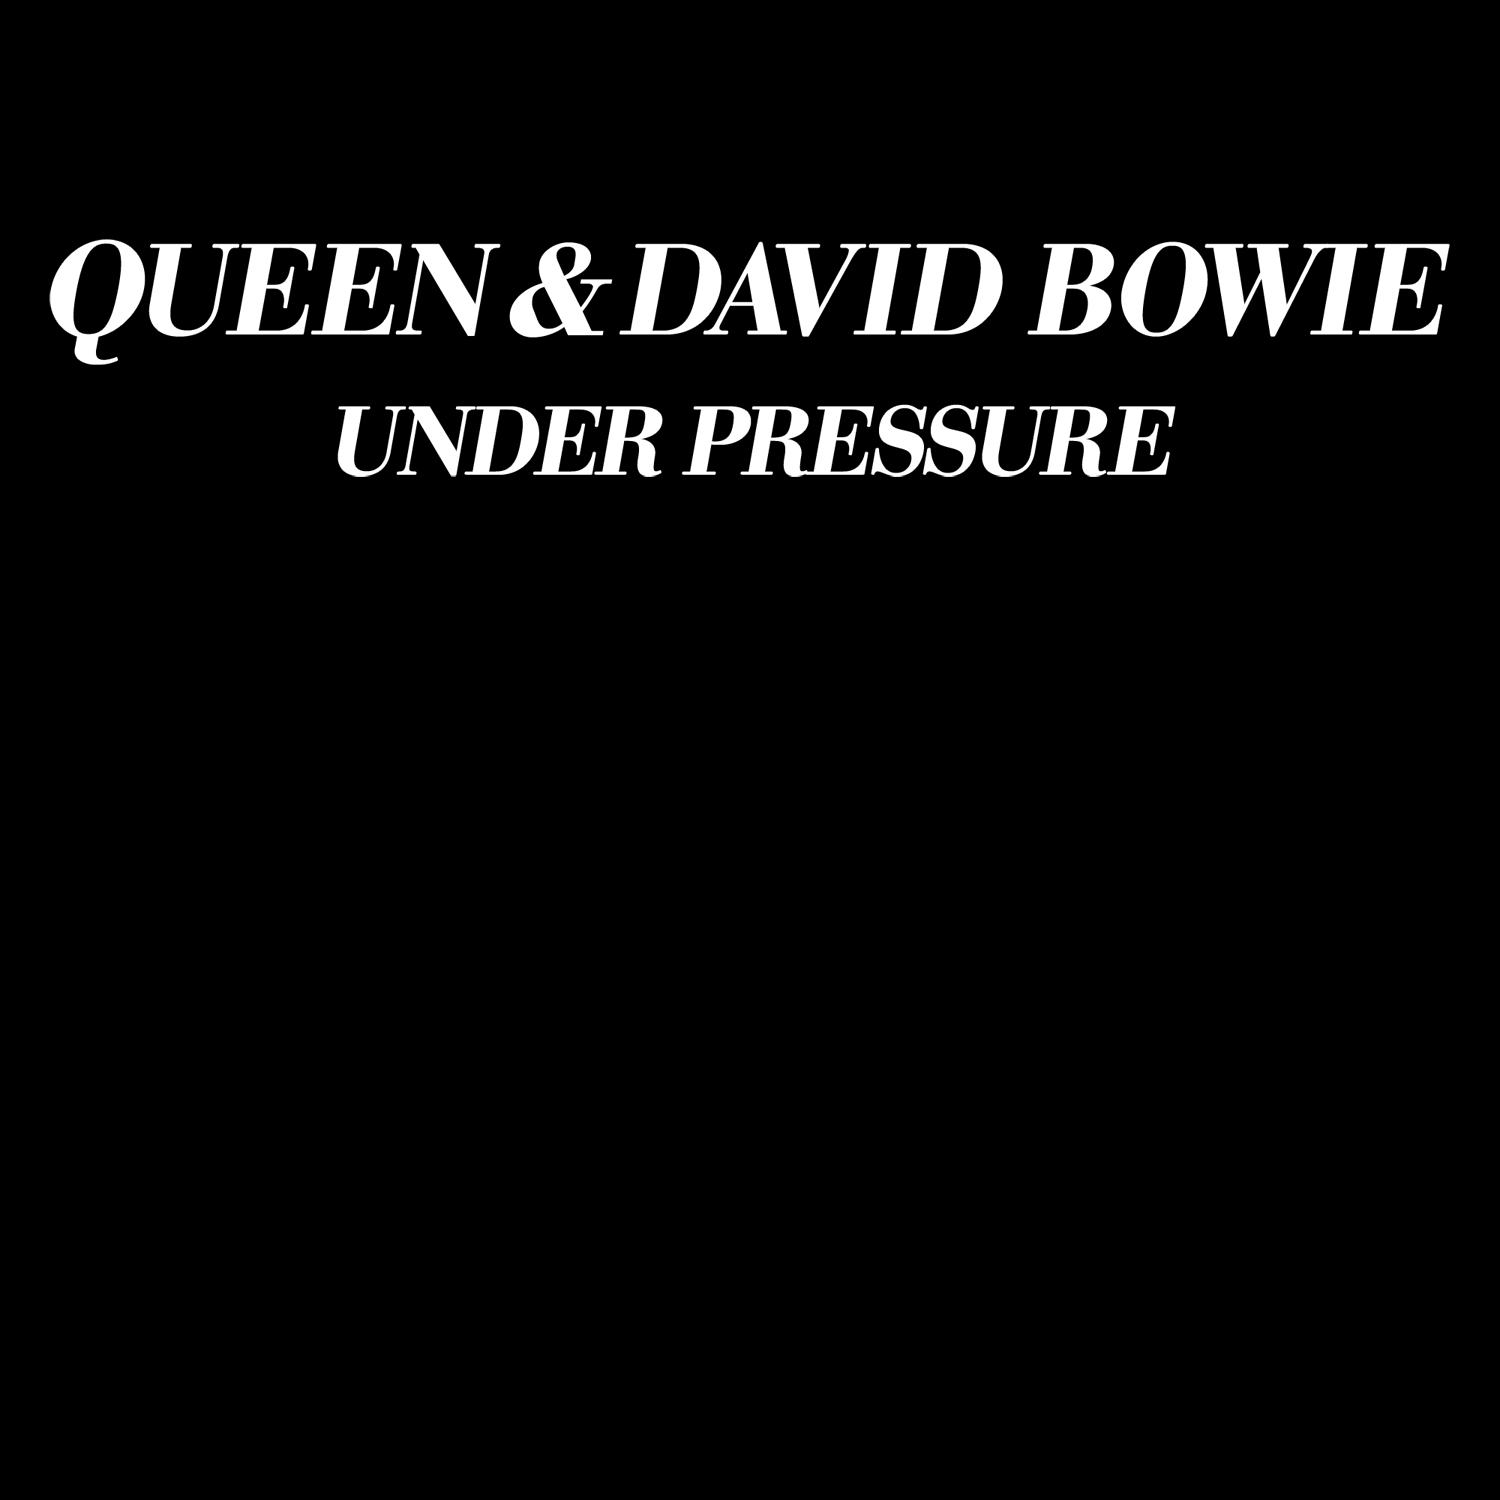 David Bowie & Queen: Under Pressure